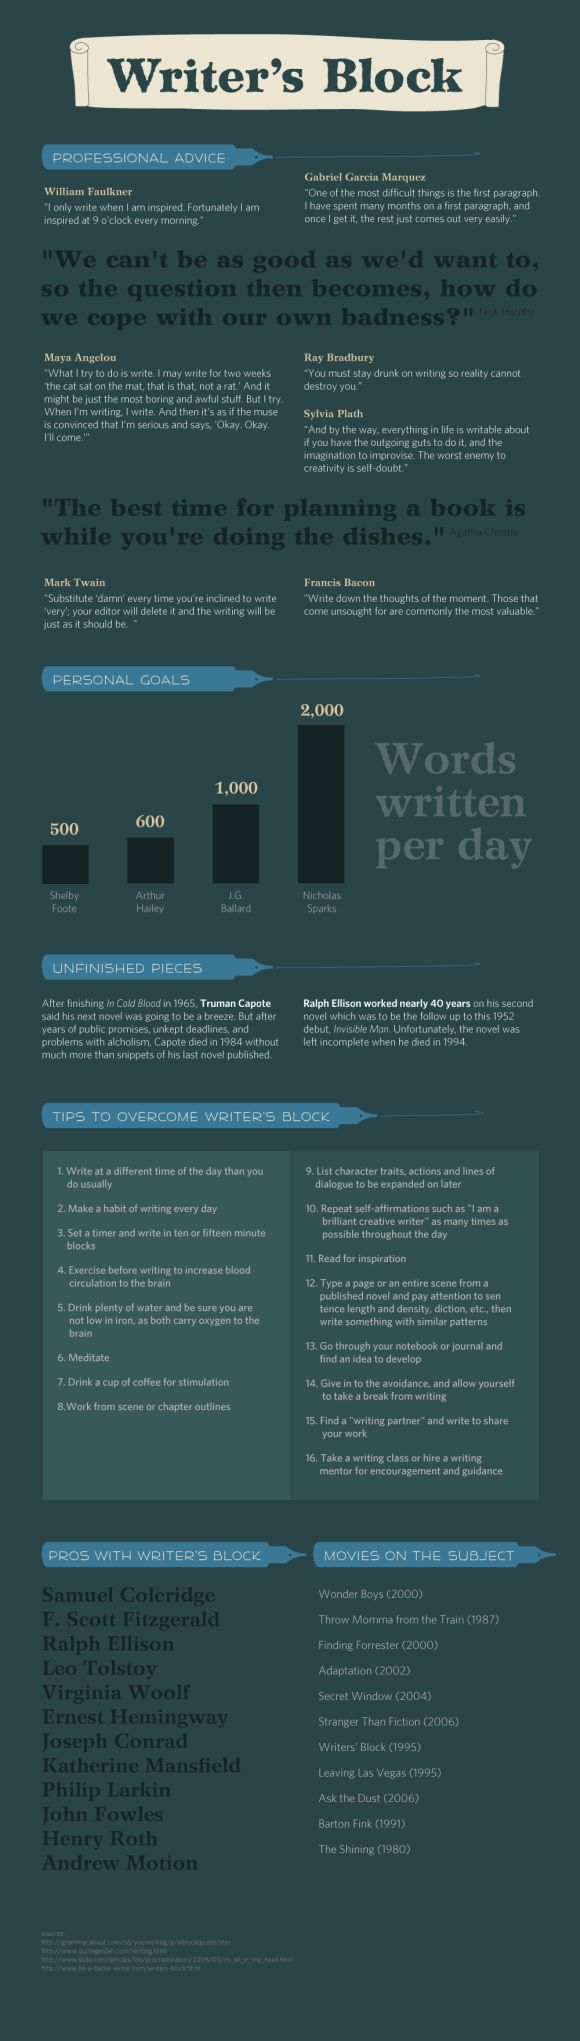 "Writer's Block -- This infographic describes the proper definition of ""writer's block"" by pros and few tips to overcome them. A little dark, but worth a read..."